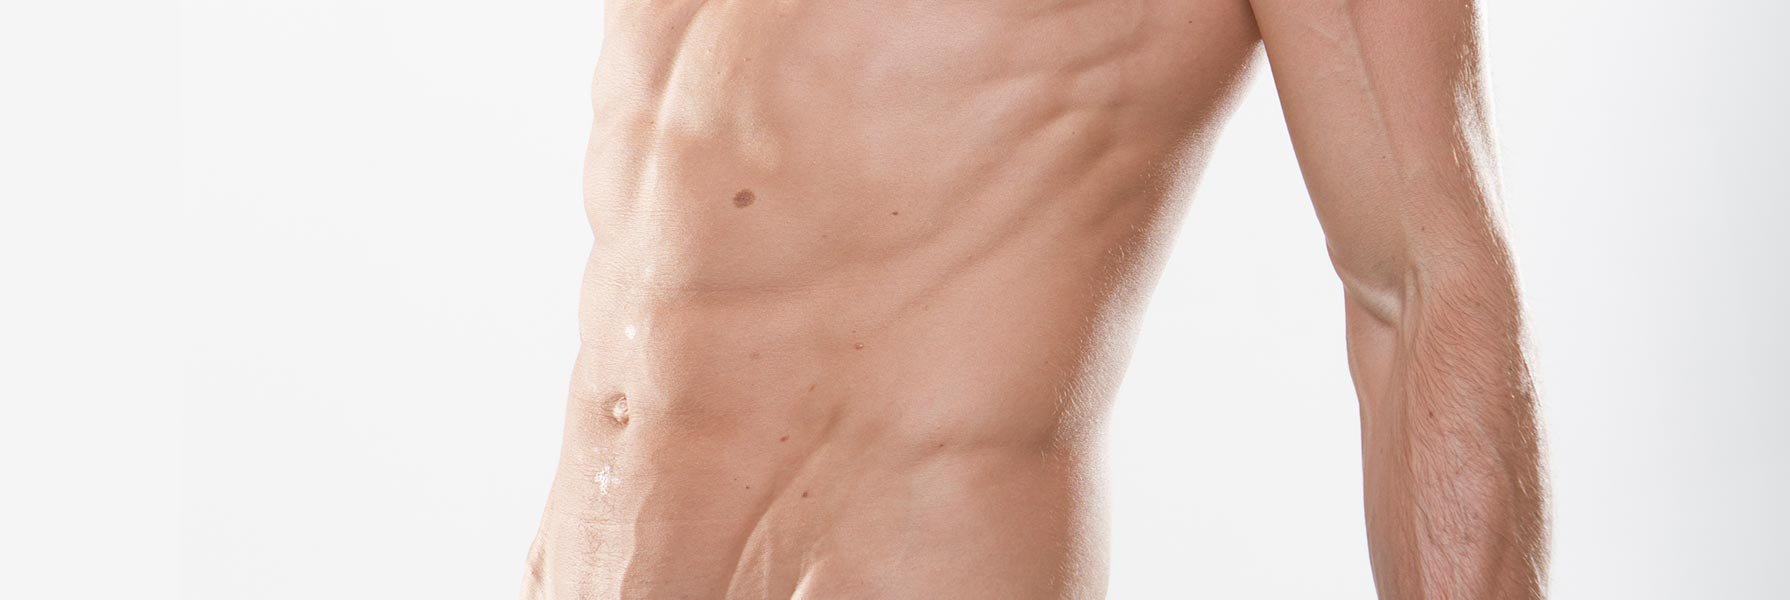 male liposculpture (liposuction) image - Form & Face Sydney